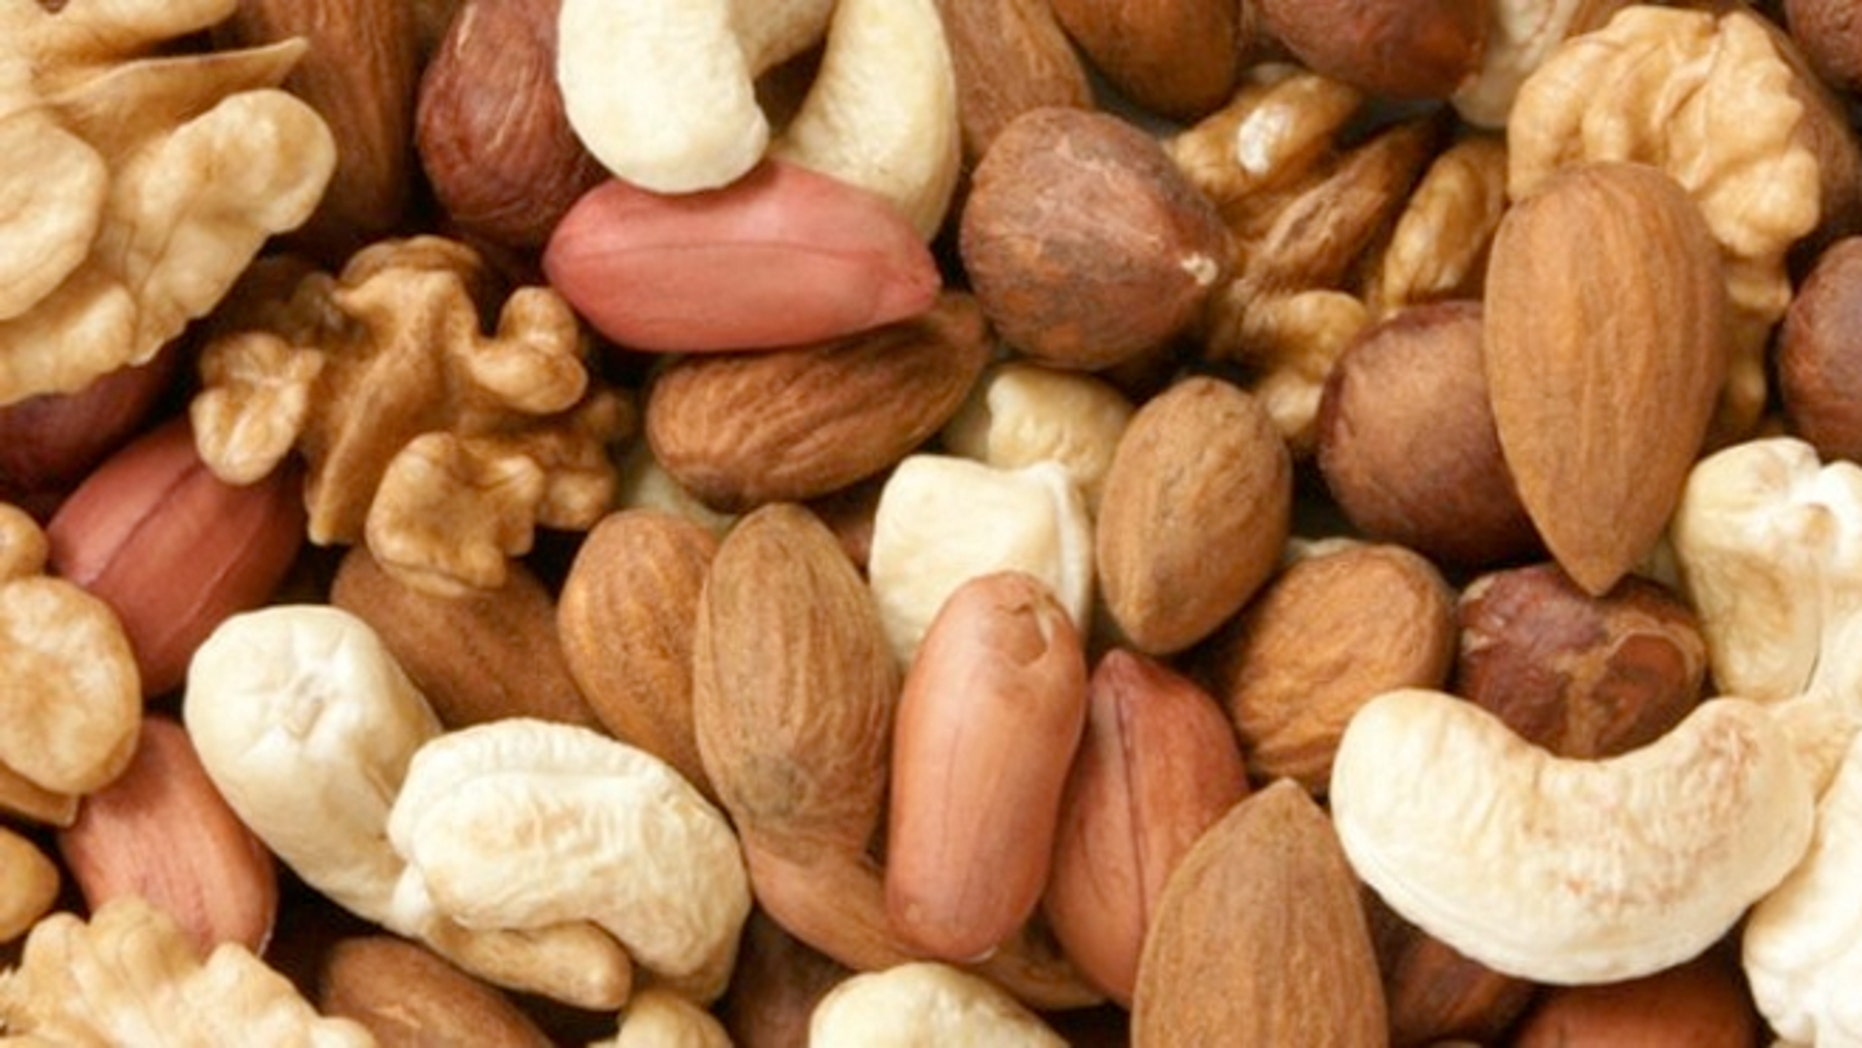 Eating Nuts Linked To Lower Risk Of Colon Cancer Fox News